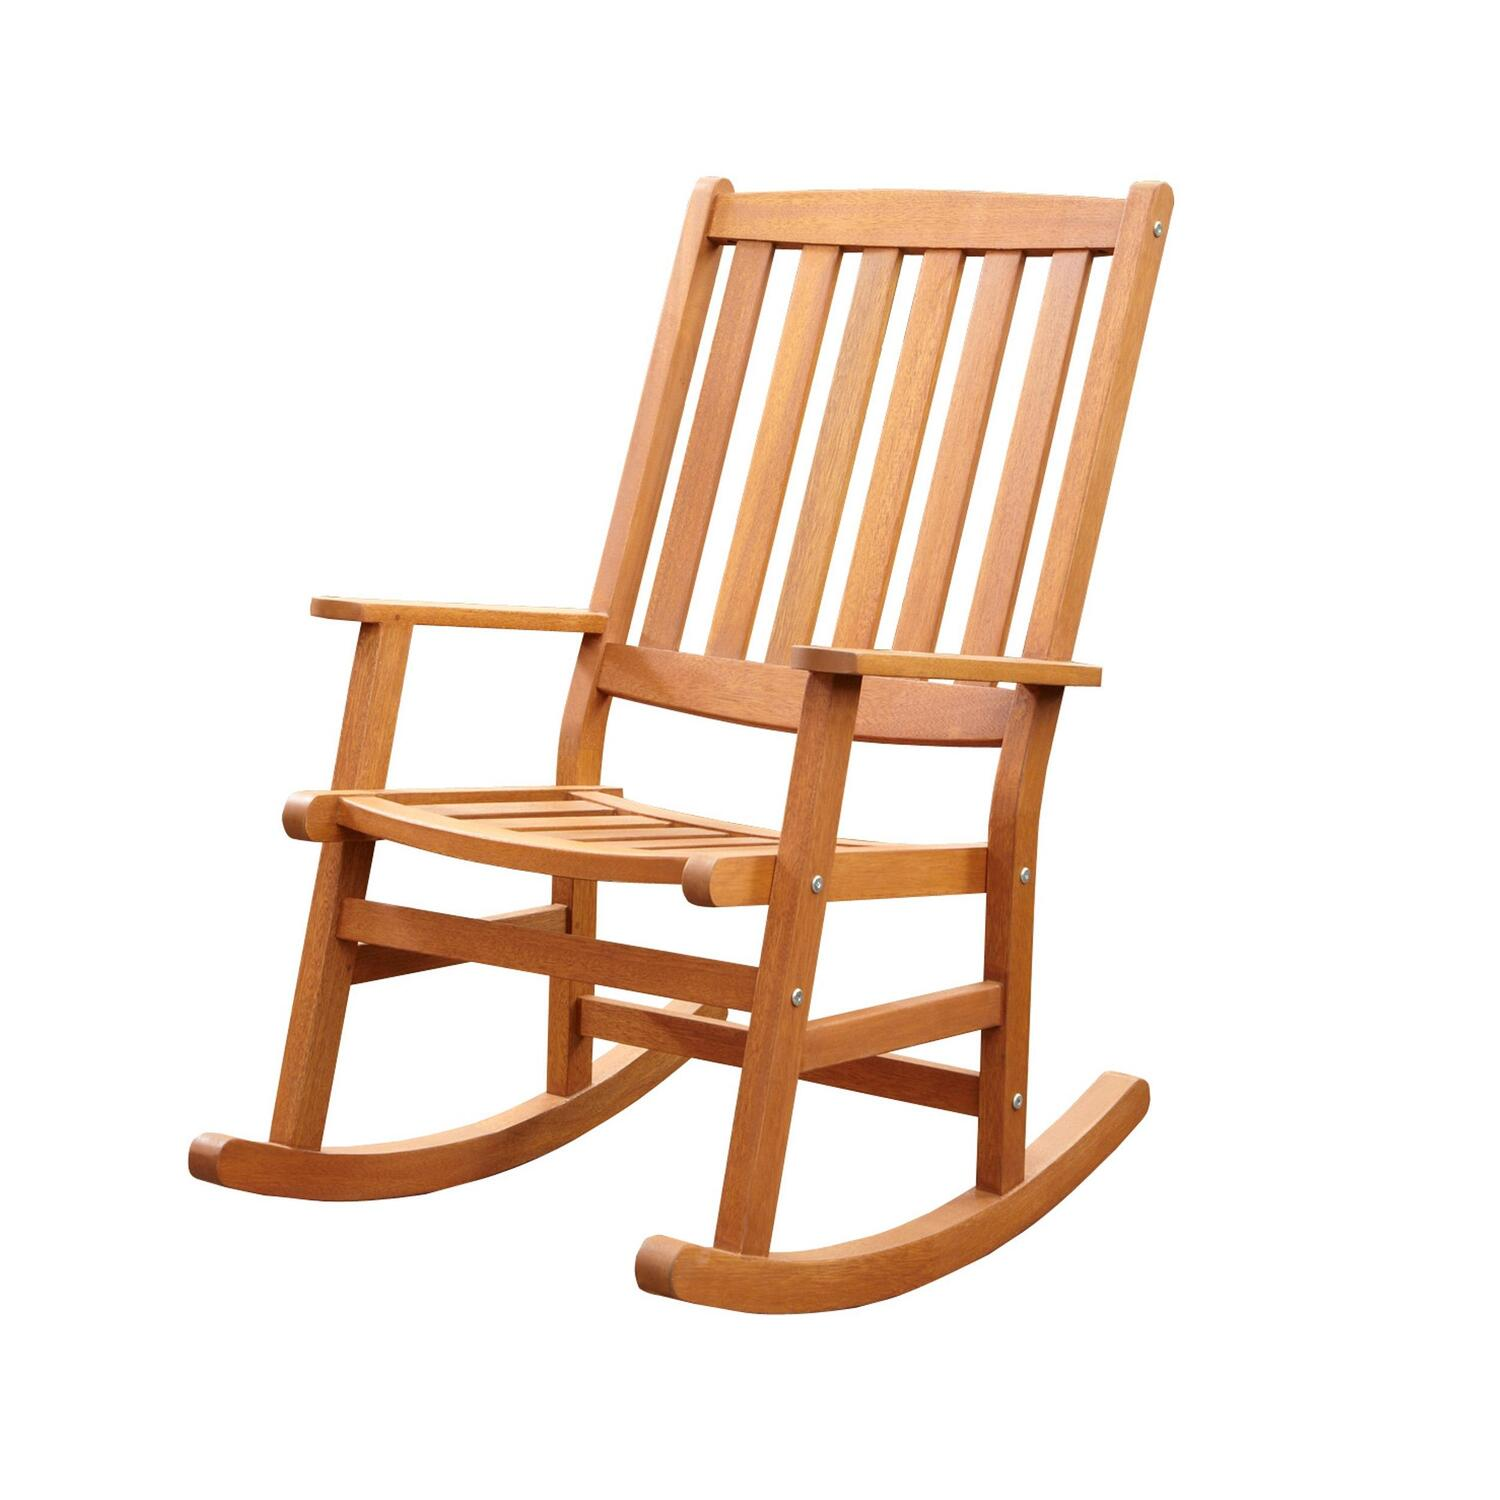 Home styles bali hai outdoor rocking chair